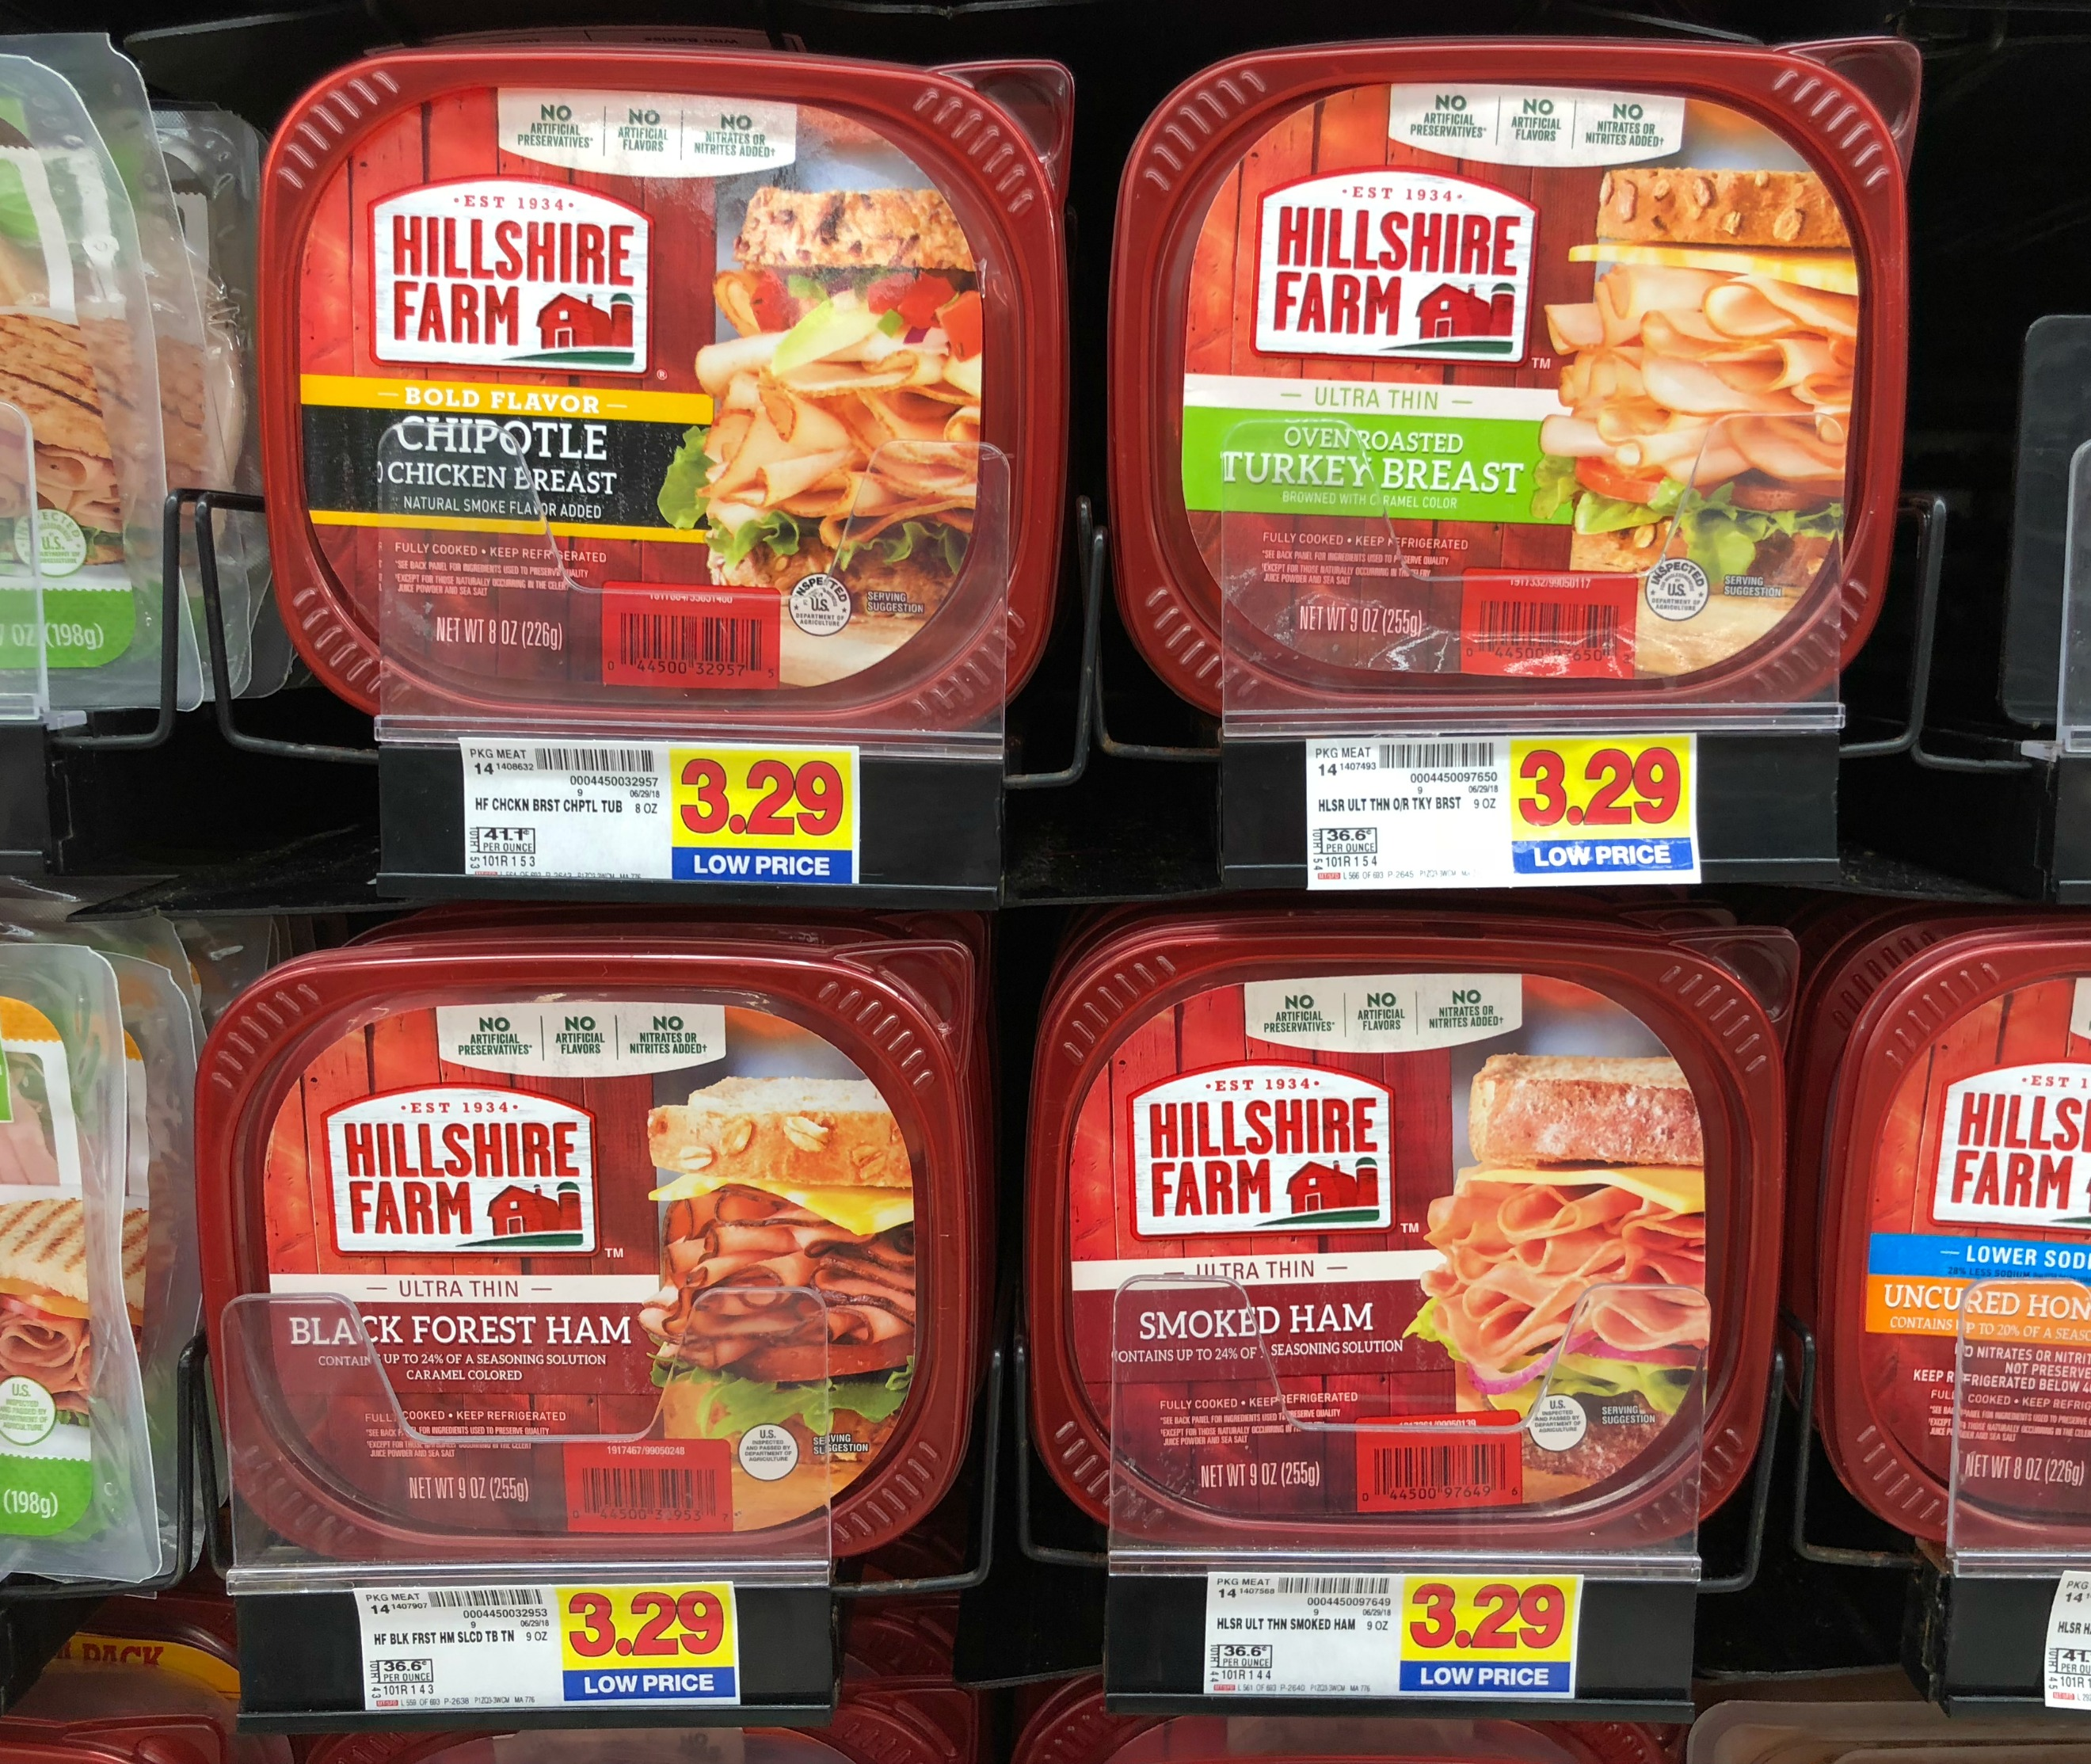 Print & Save this GREAT Hillshire Farm Lunch Meat for a ... on dollar tree application job print, kroger job application printable, kroger job application status, kroger bagger job application, kroger job application kiosk,